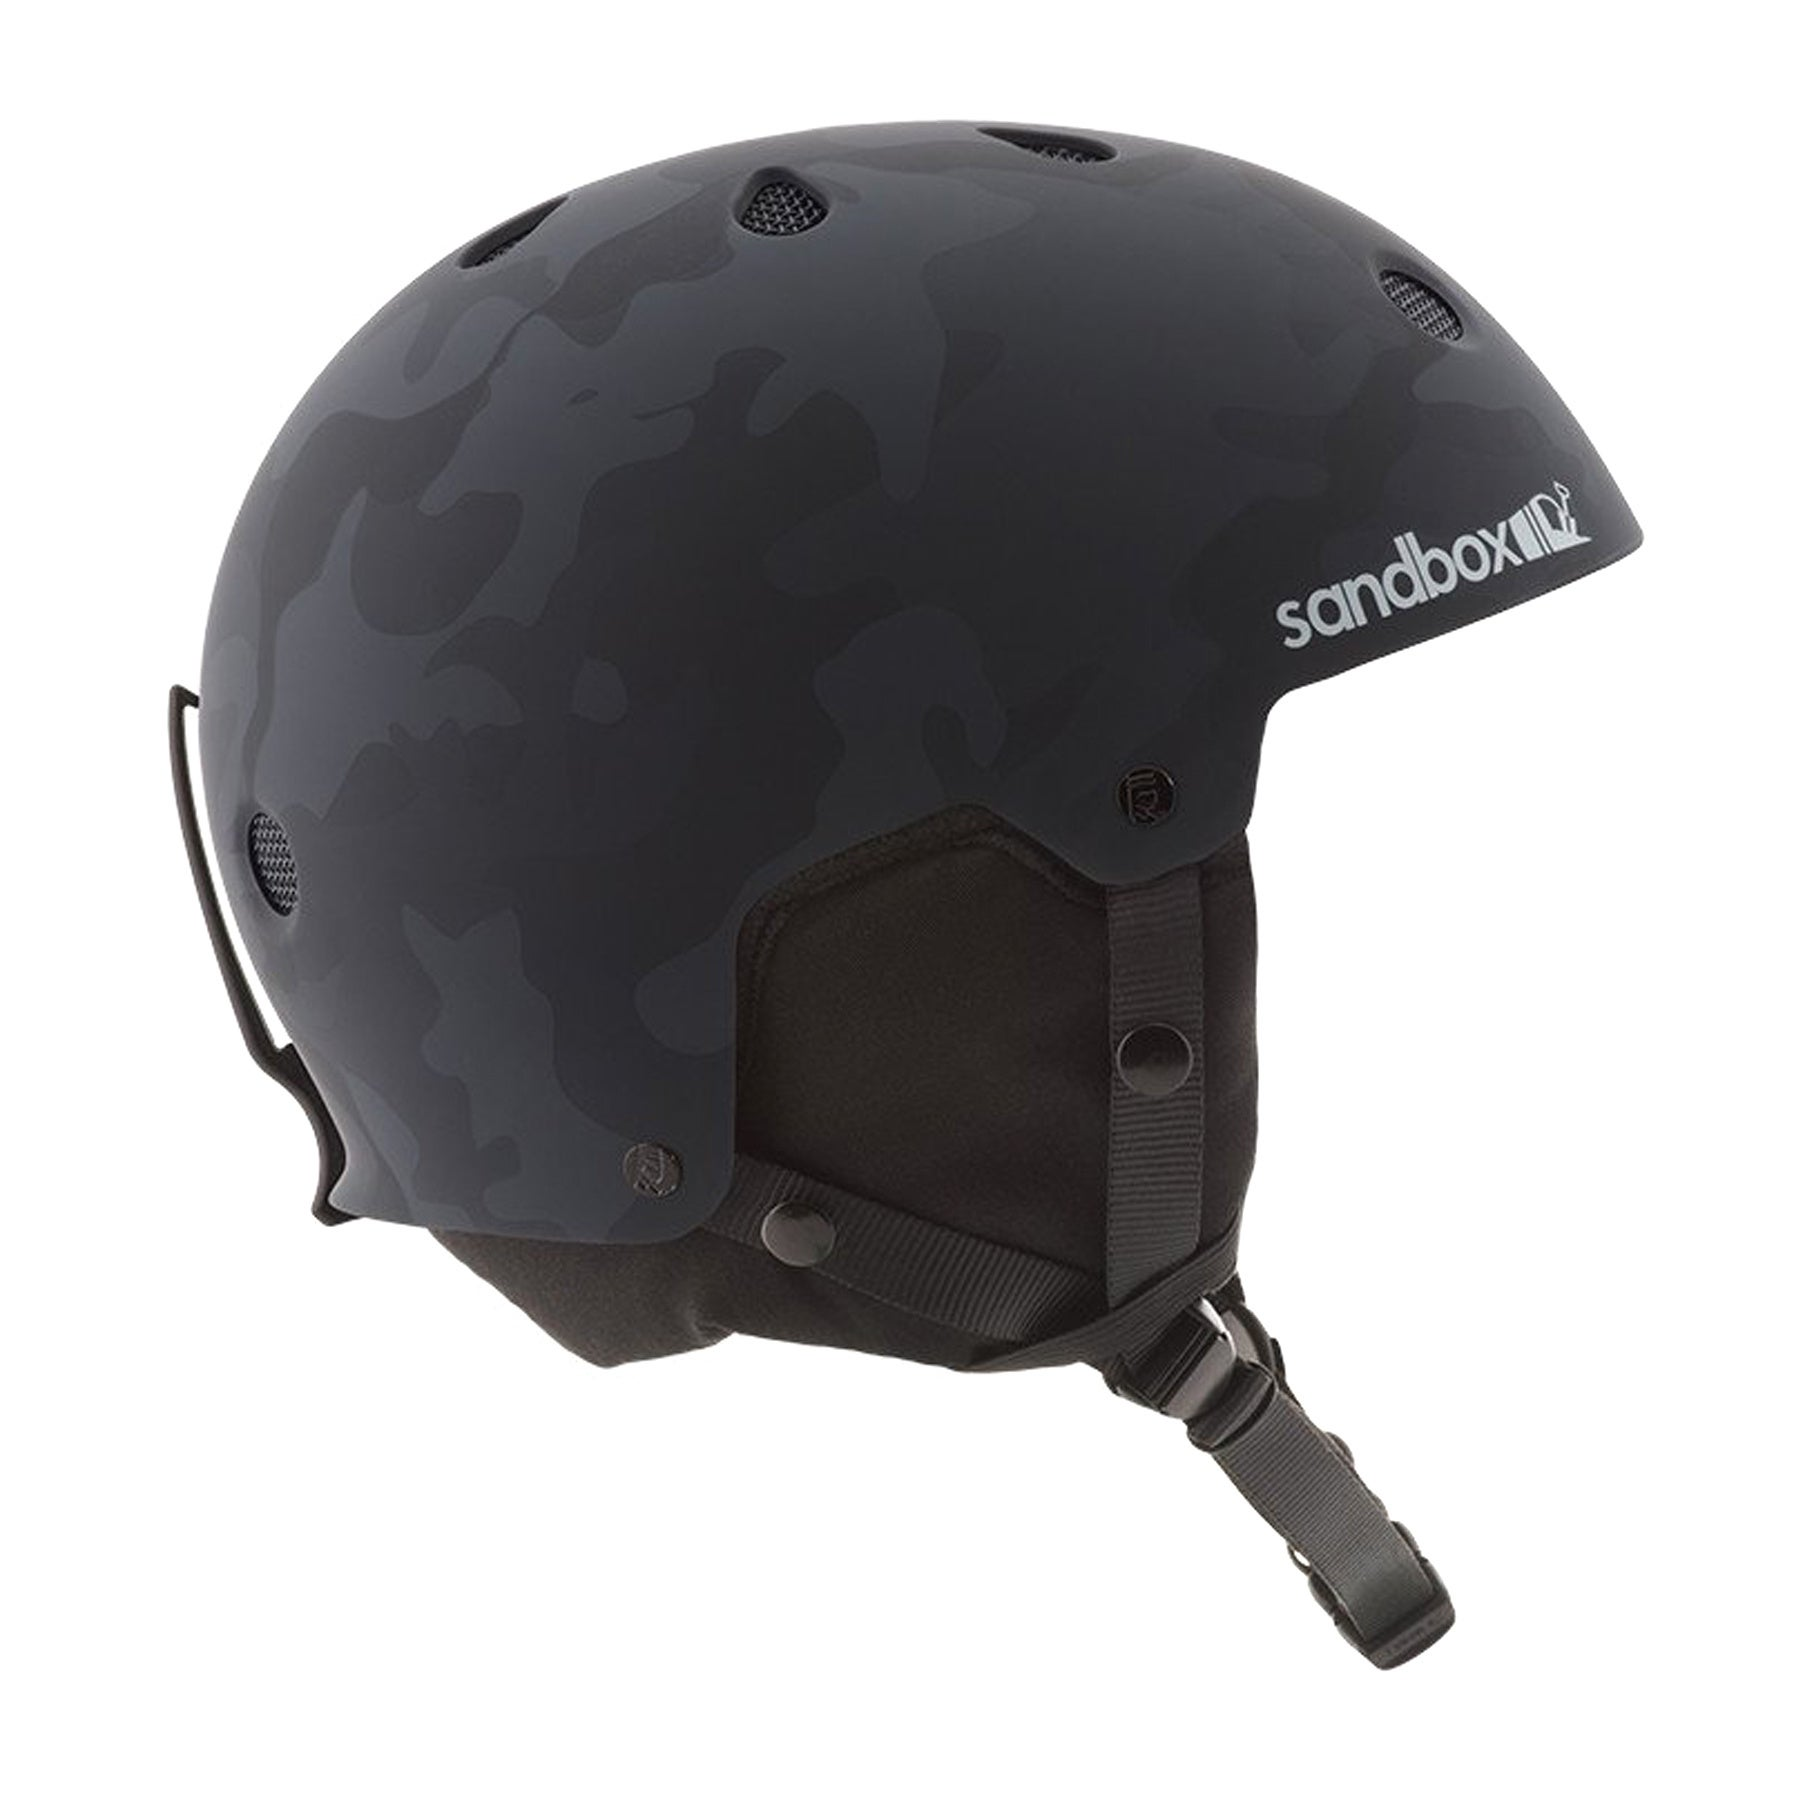 Sandbox Legend Snow Ski Helmet - Black Camo Matte